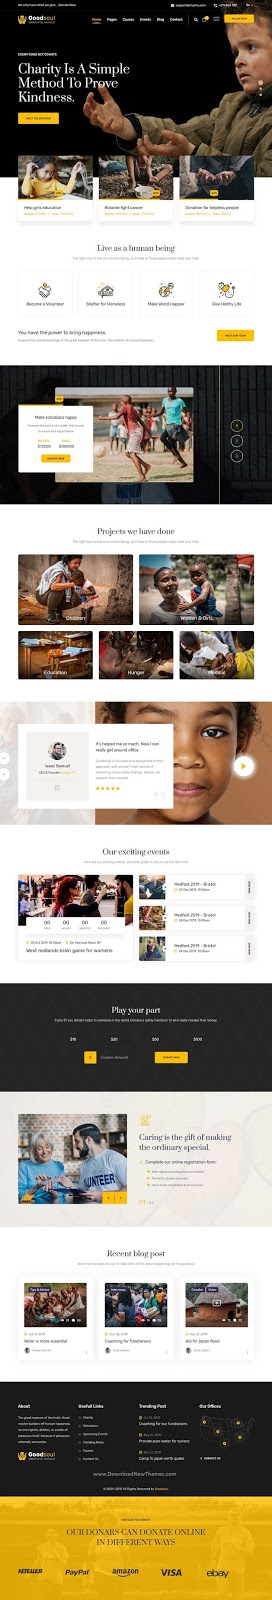 Beautiful Charity & Fundraising Website Template